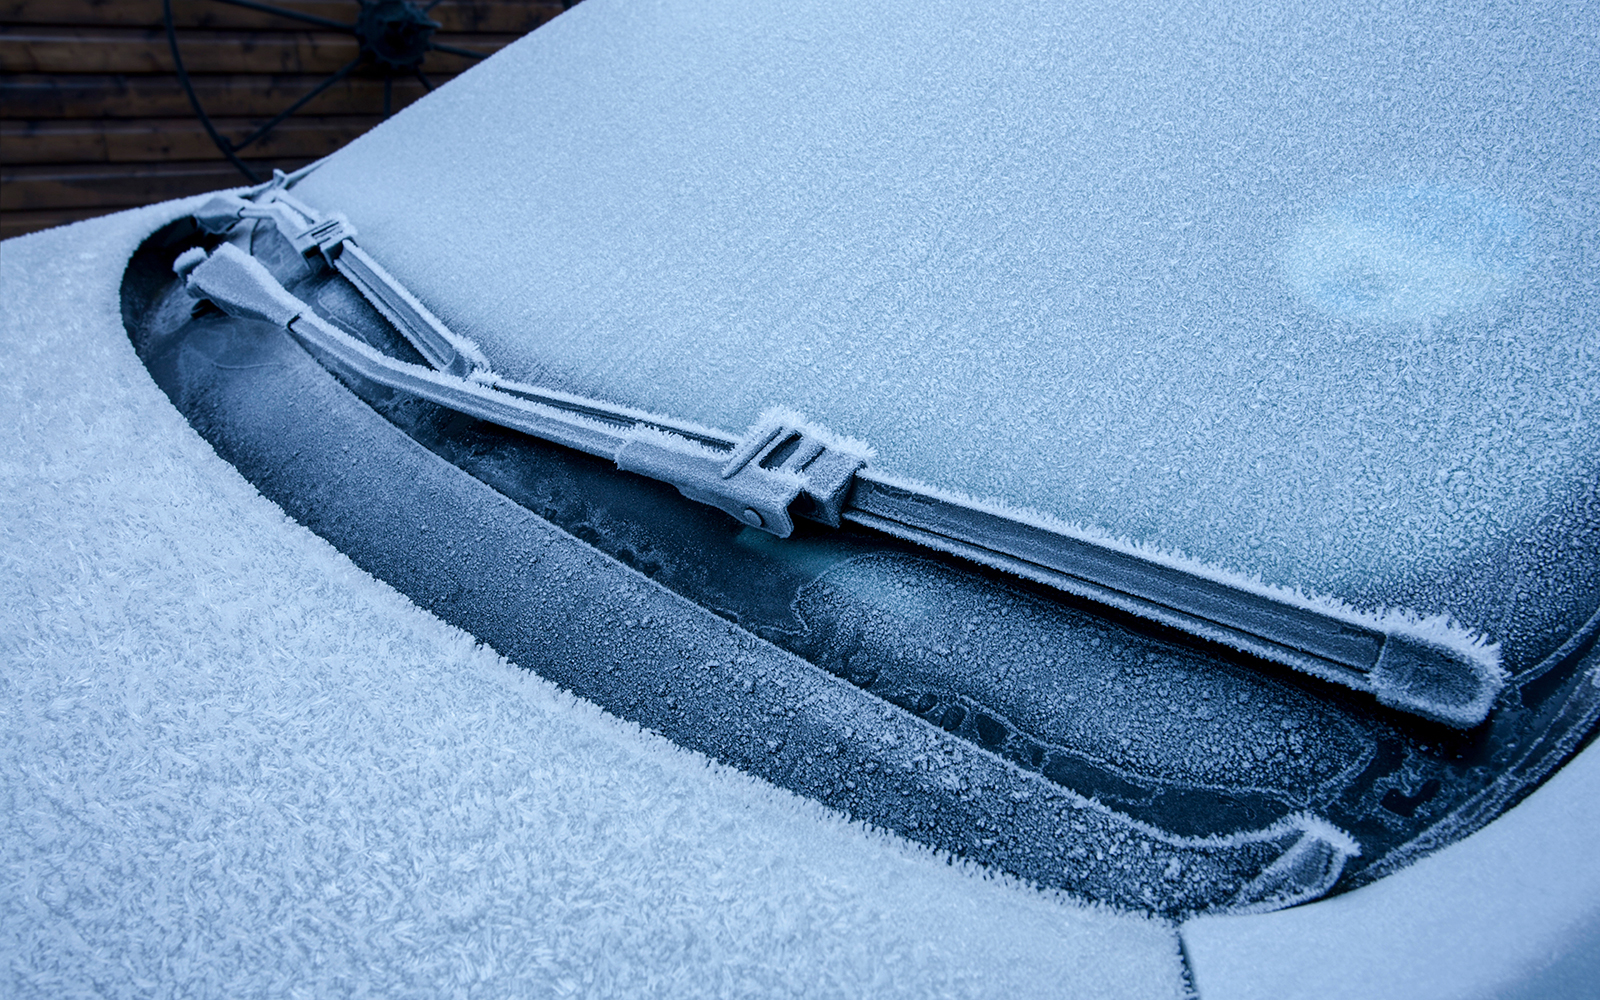 How to defrost your car windshield in less than a minute